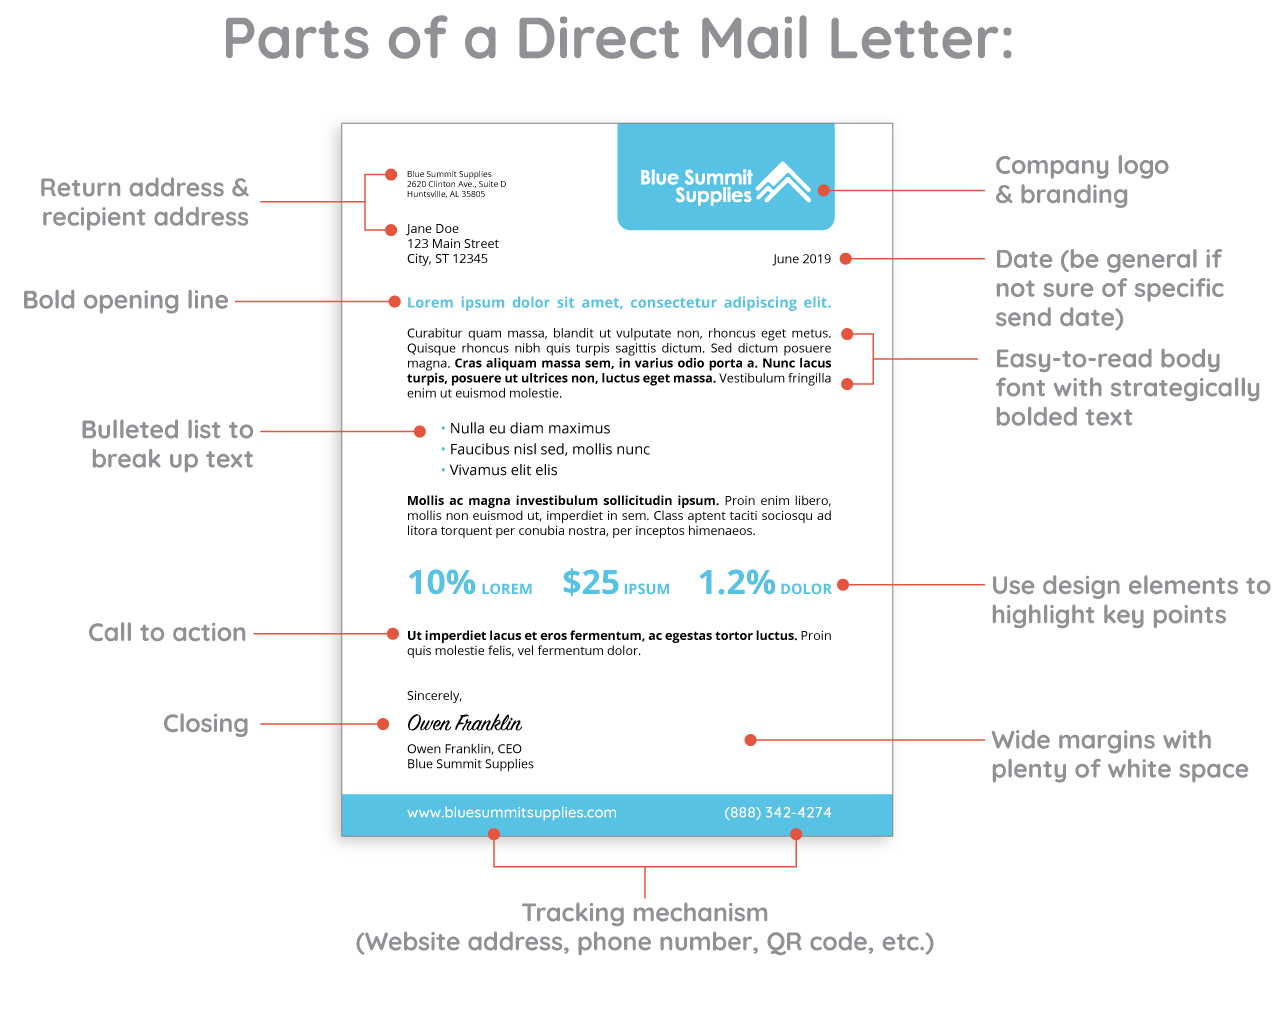 Direct mail letter example